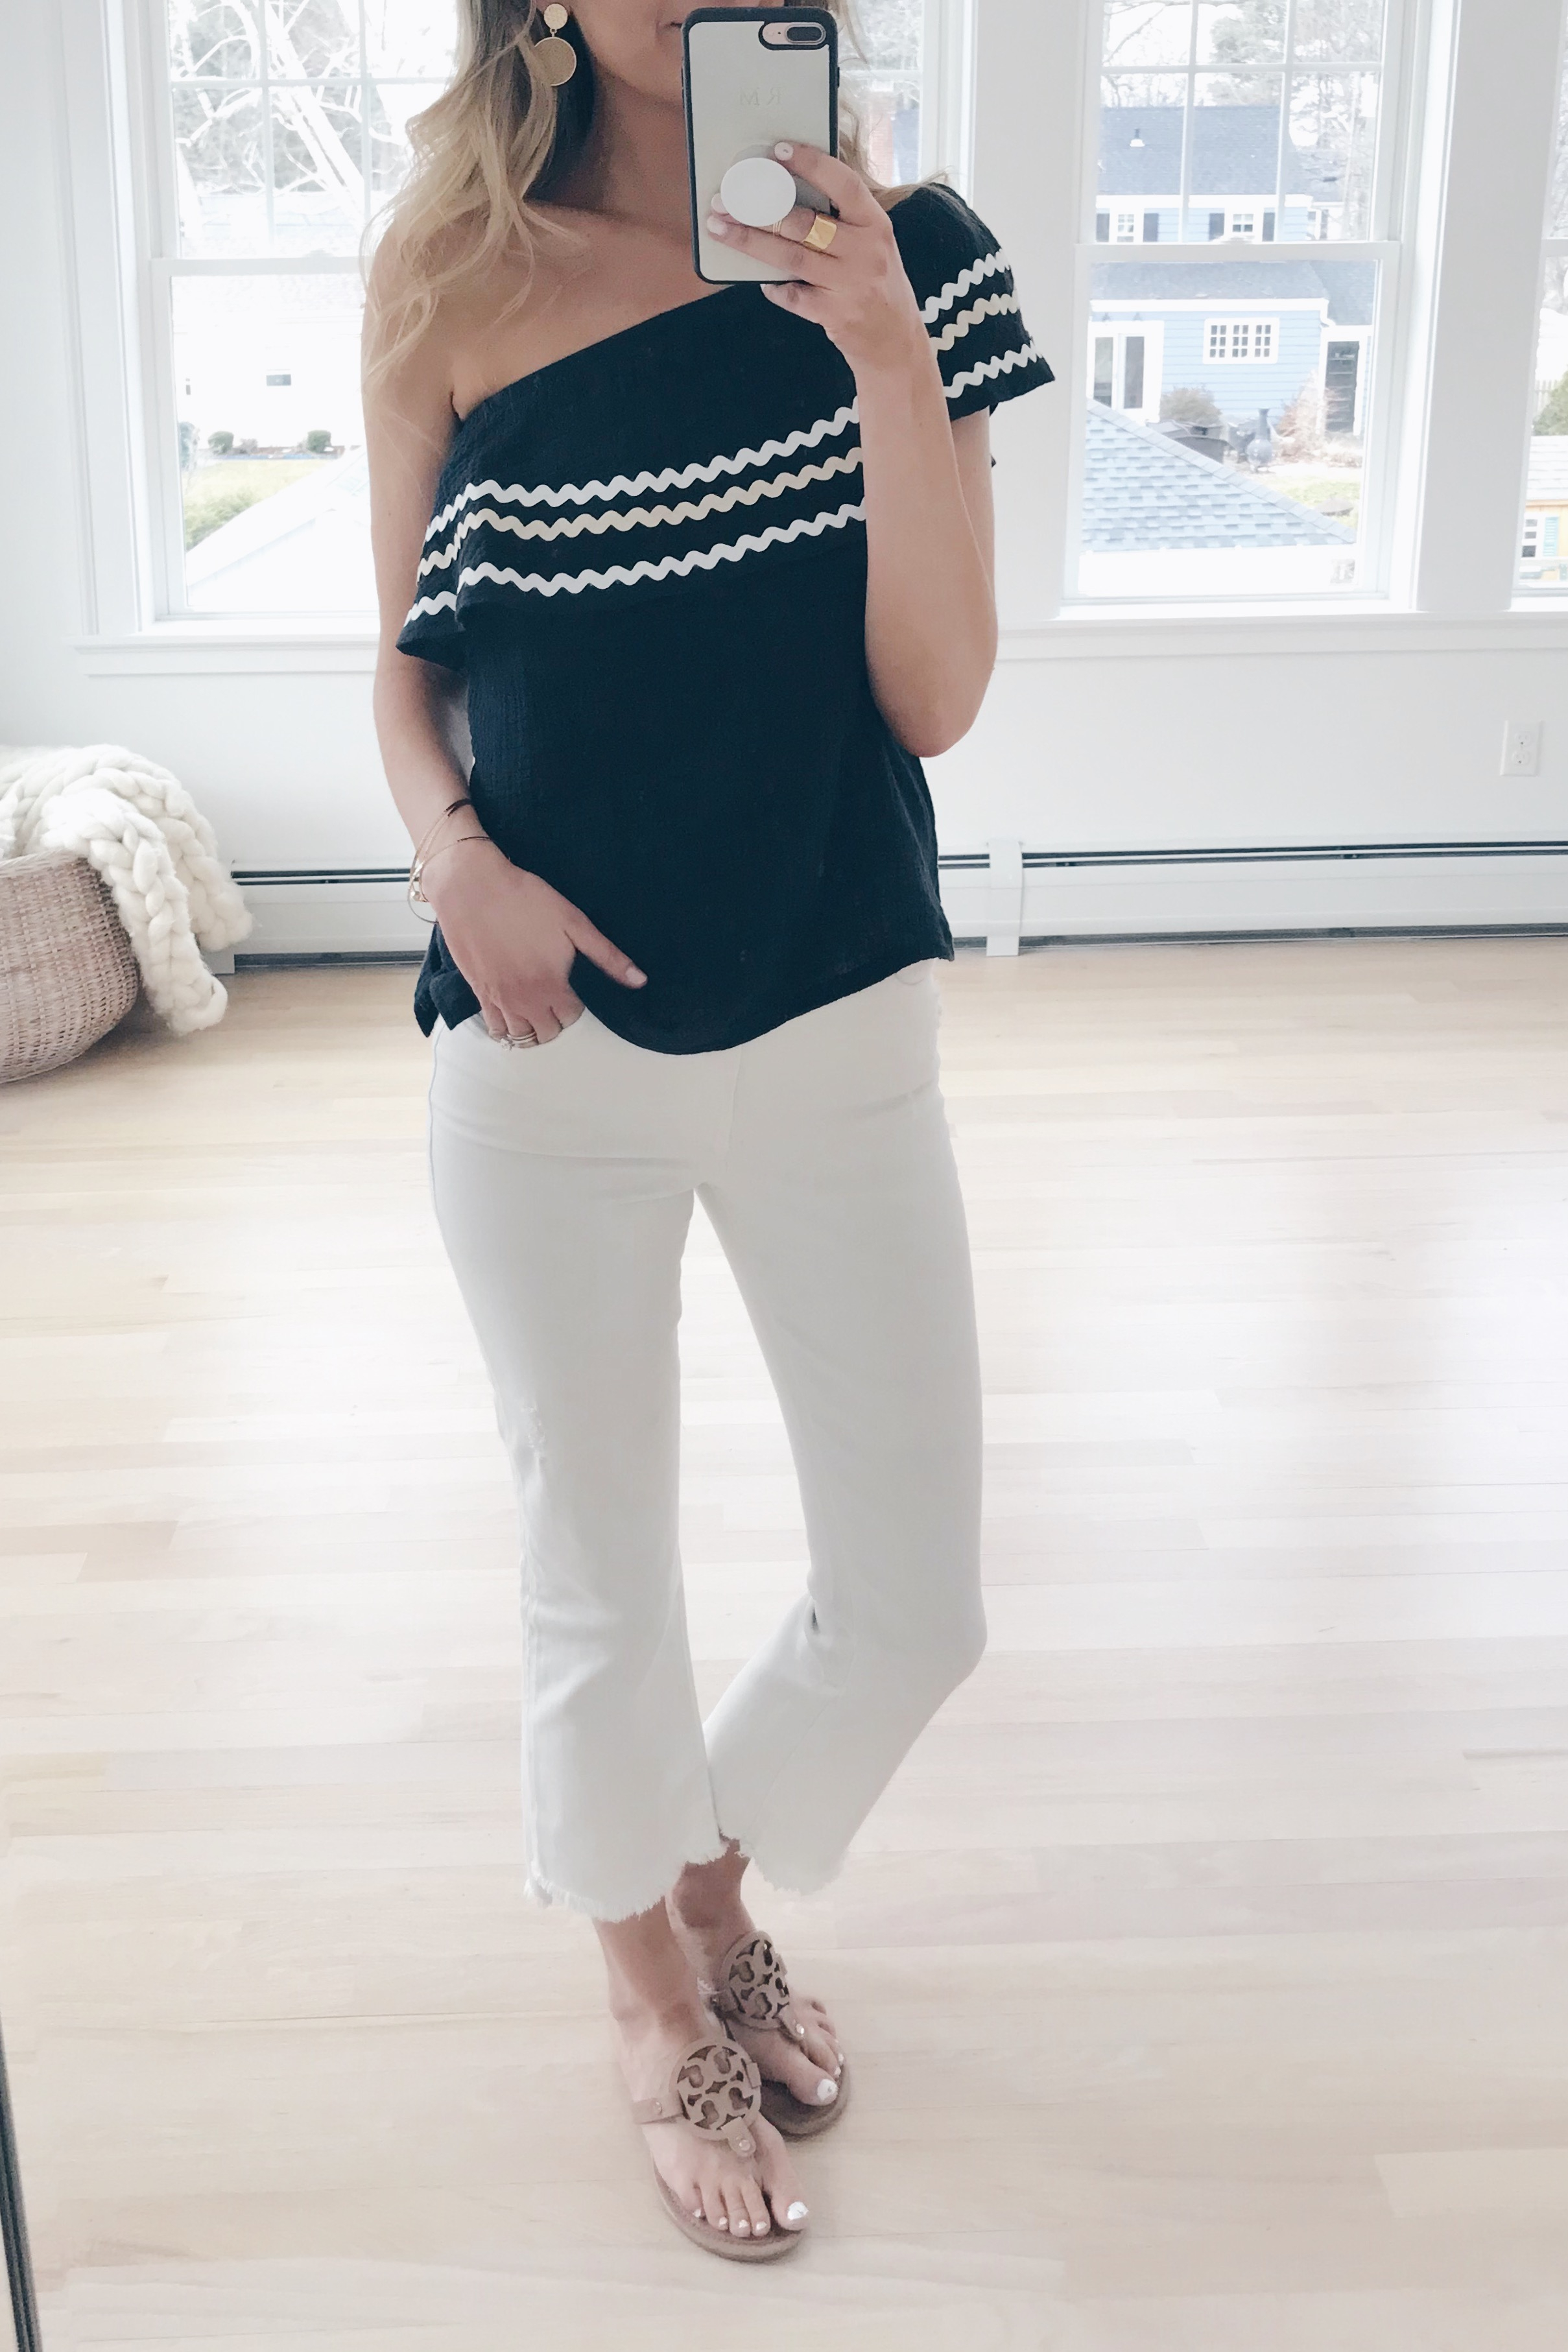 reosrt wear 2019 - black one shoulder gibson top and cropped white jeans on pinteresting plans blog